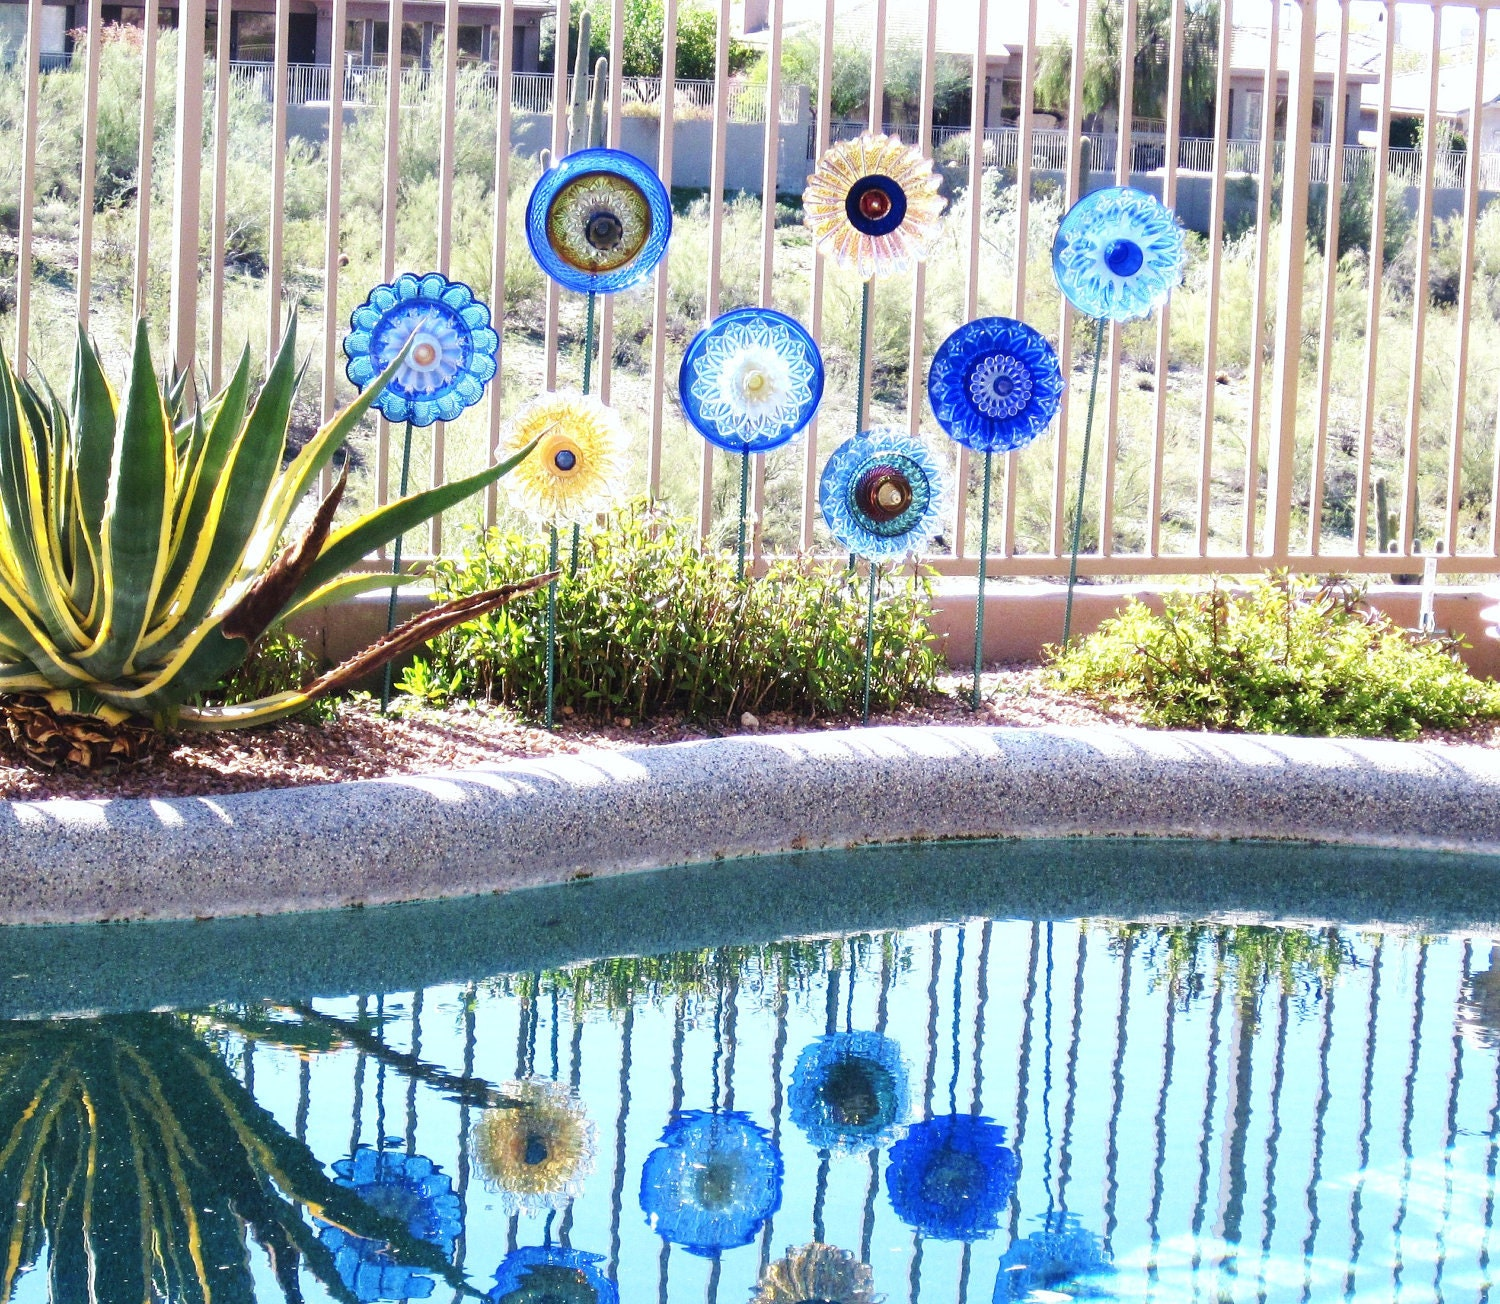 Sale garden art glass plate flower decor upcycled glassware for Garden glass house designs